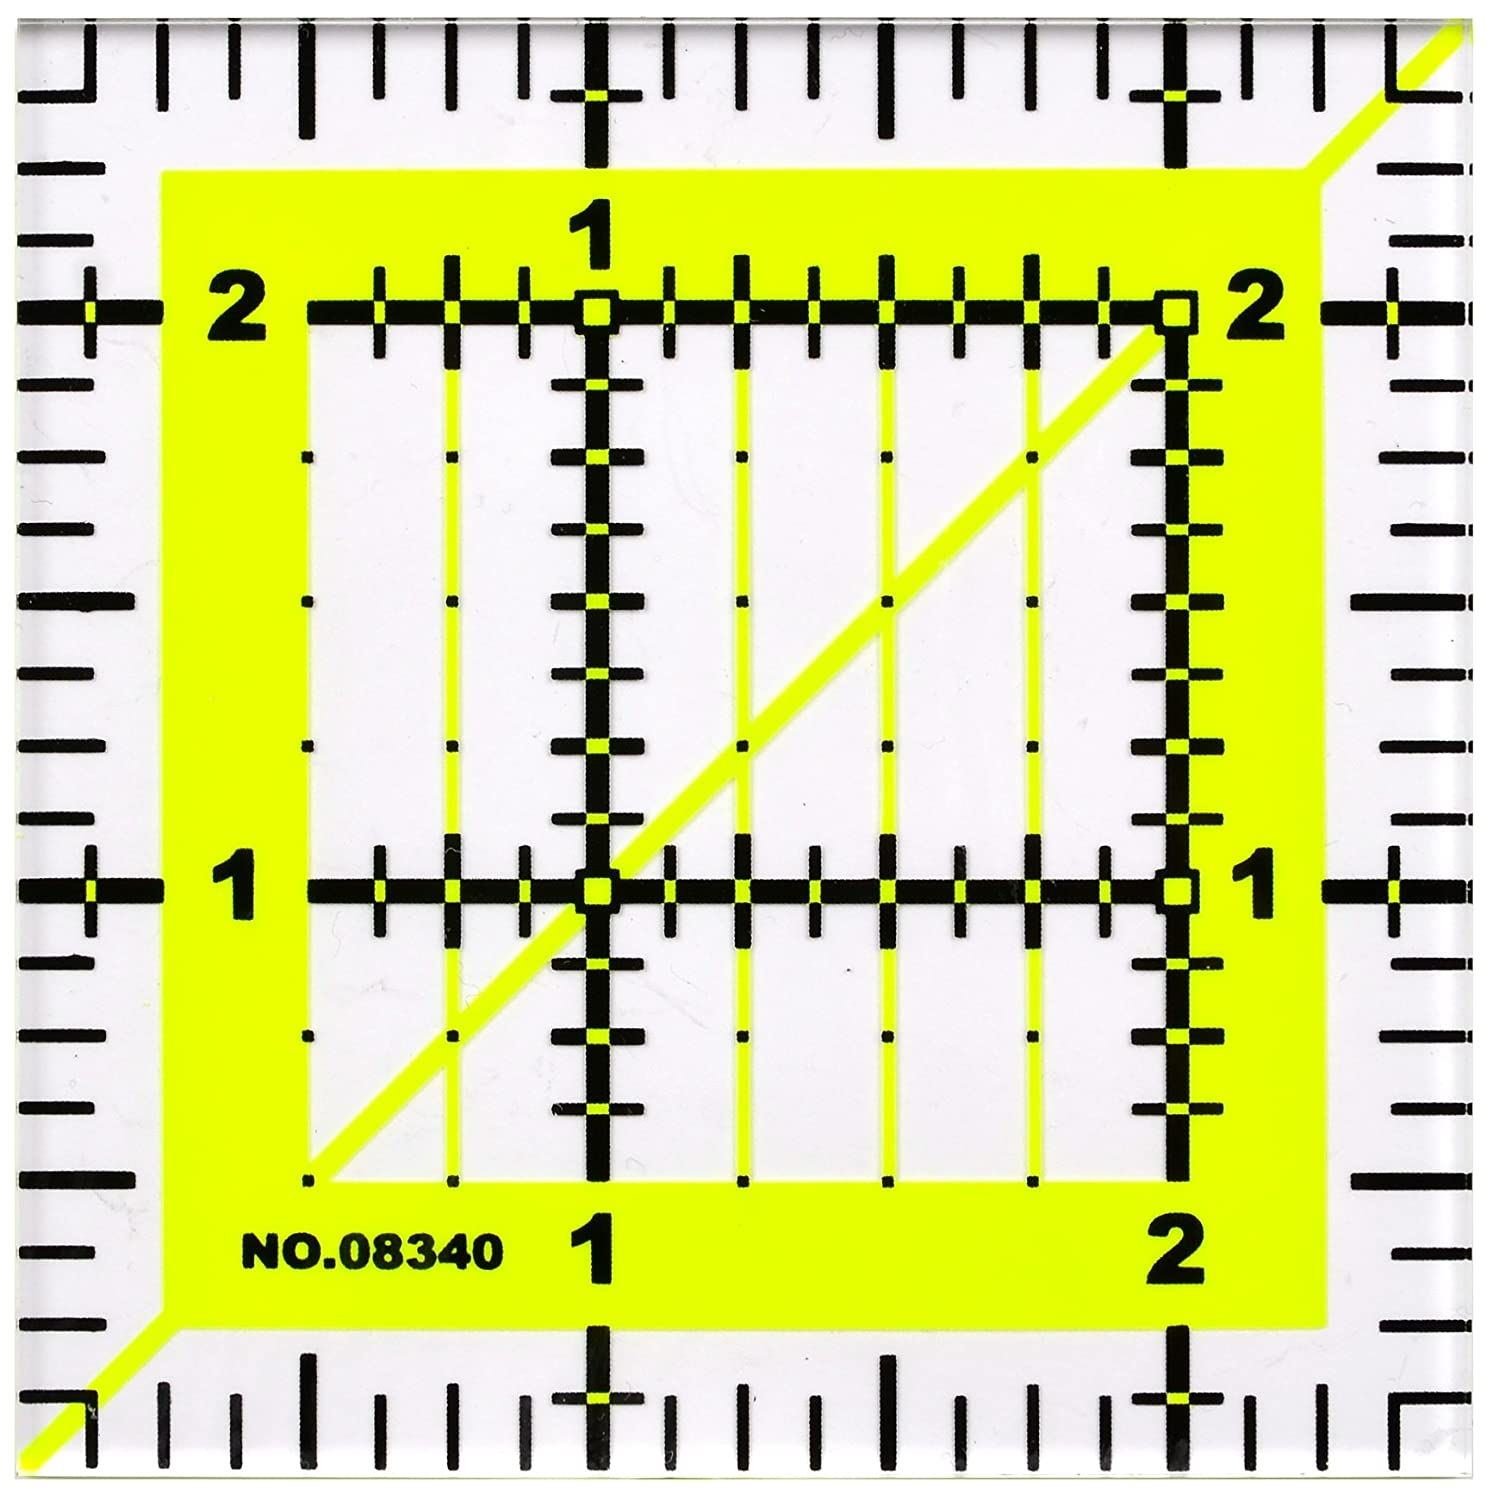 Clear and Accurate Markings Skyhawk Acrylic Quilting Rulers Combo Pack of 4 Quilters Ruler 9.5 X 9.5, 6 X 6, 4.5 X 4.5, 2.5 X 2.5